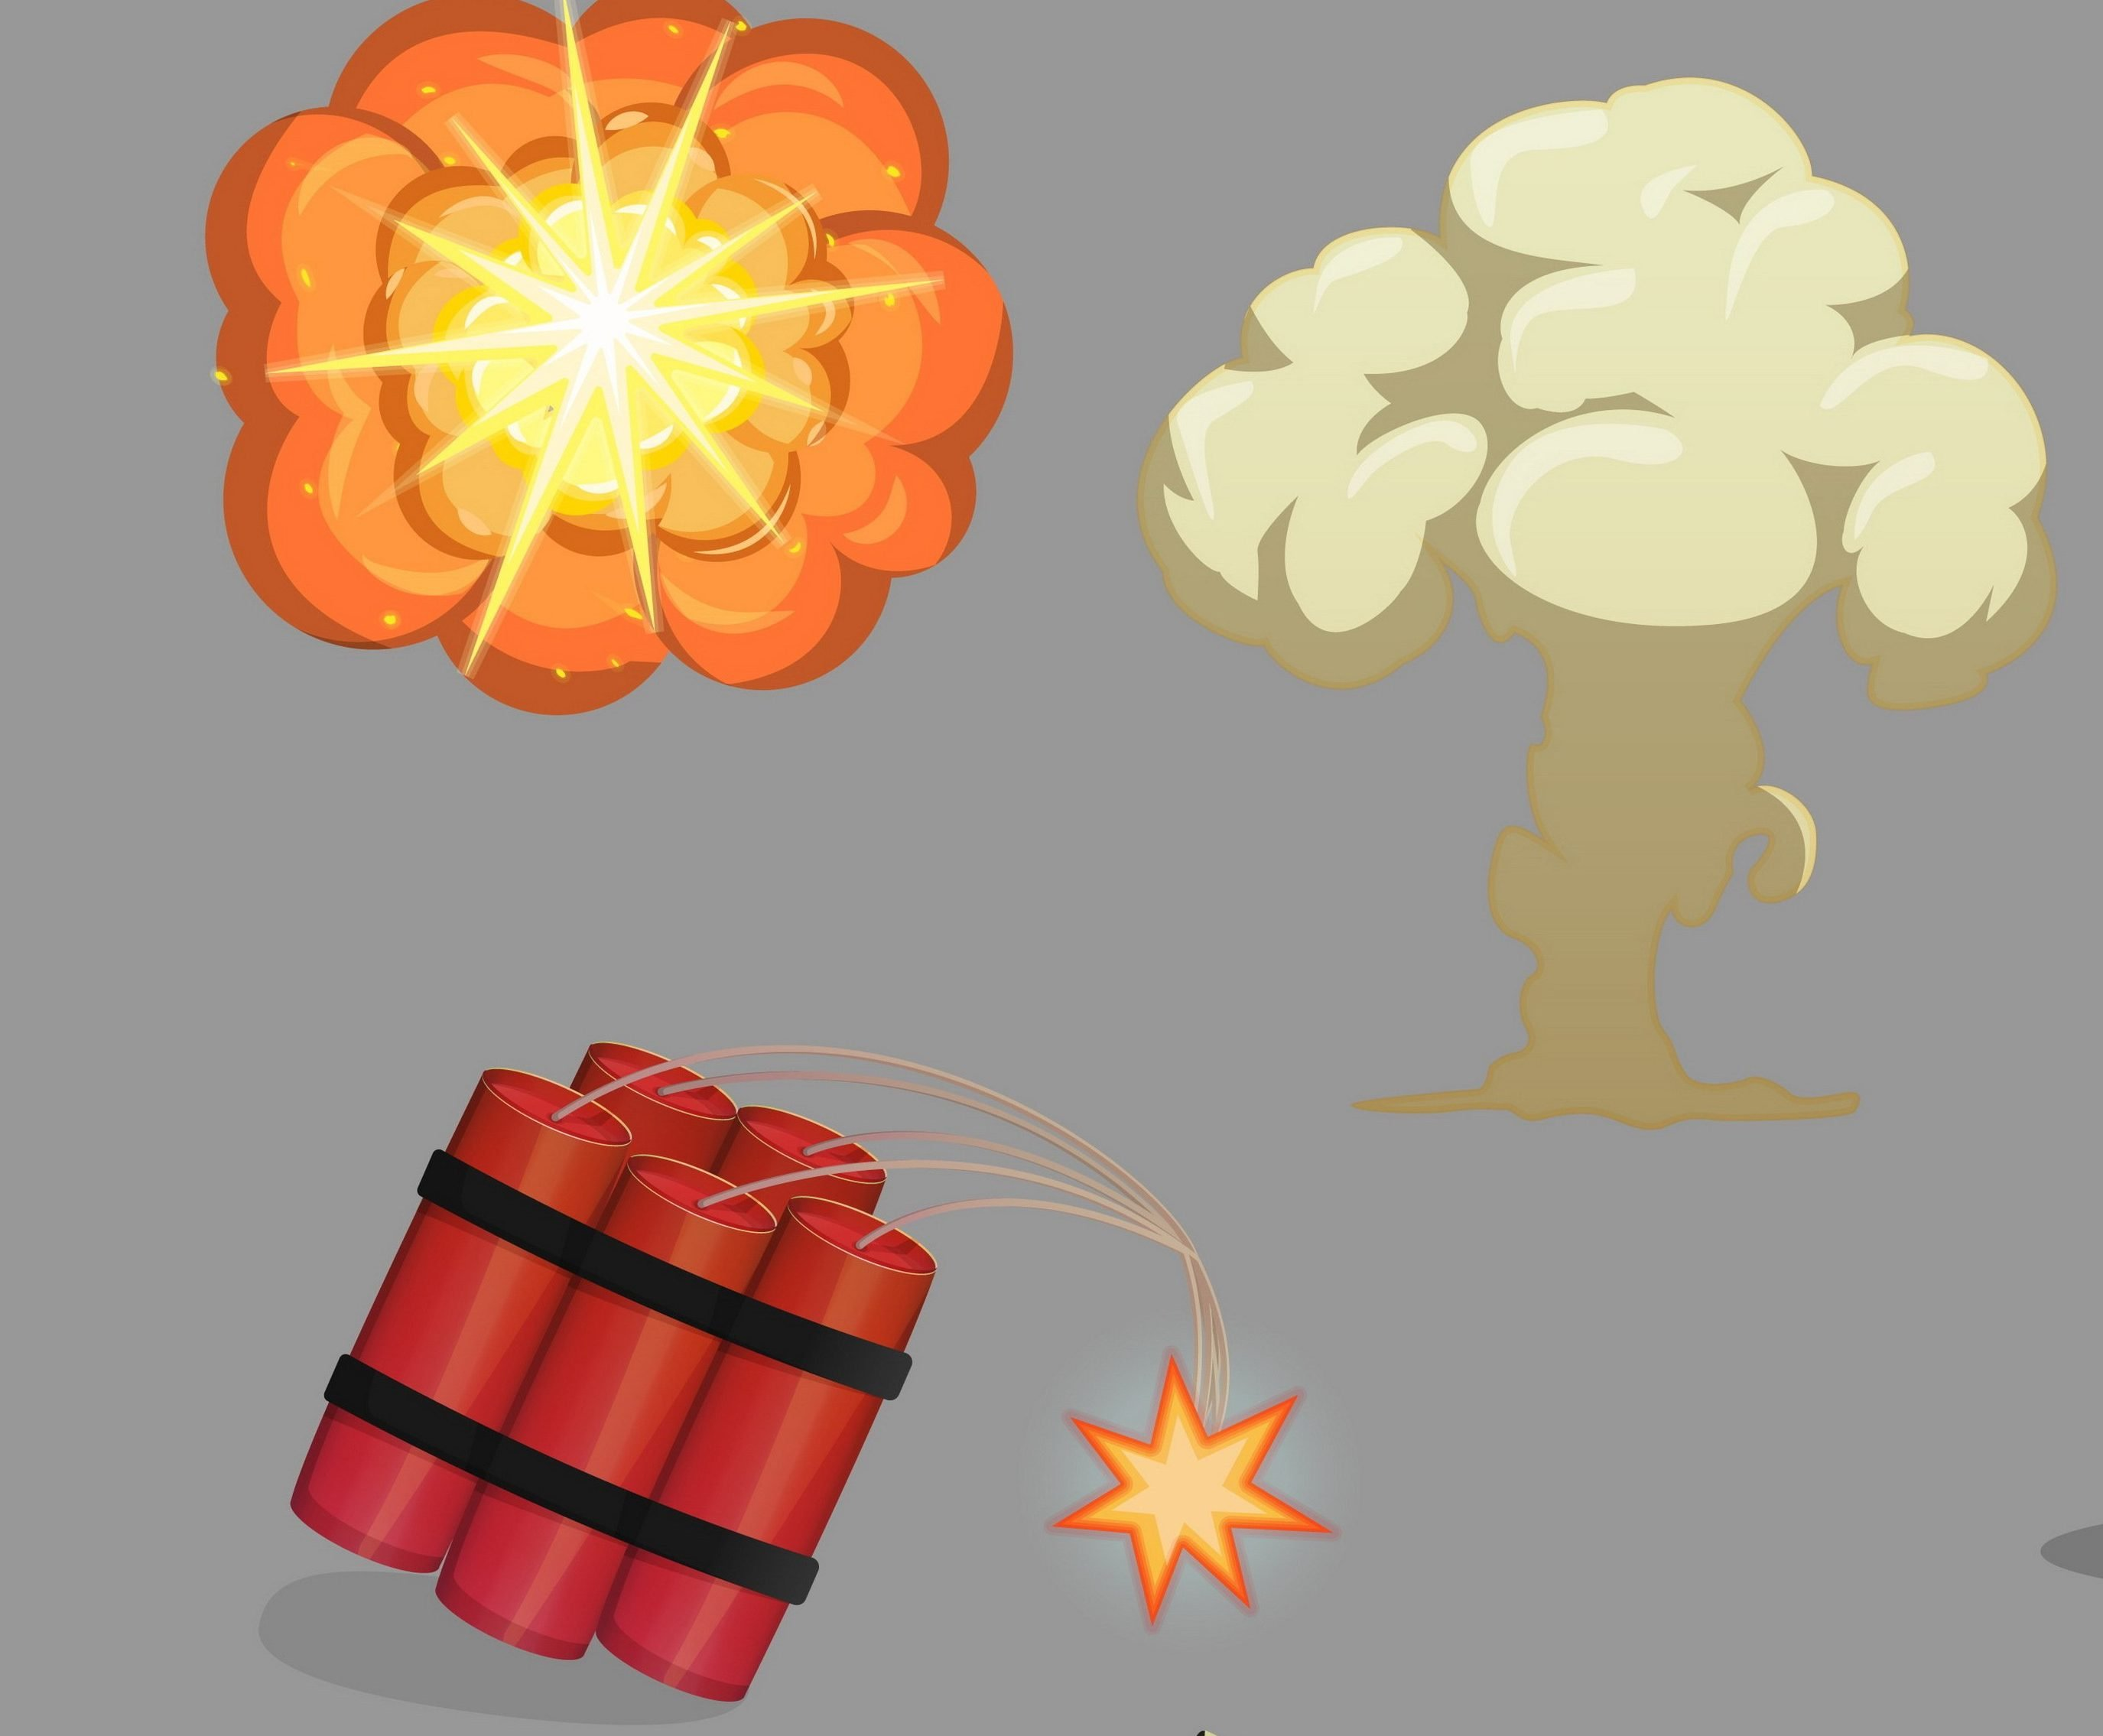 Explosives Possession